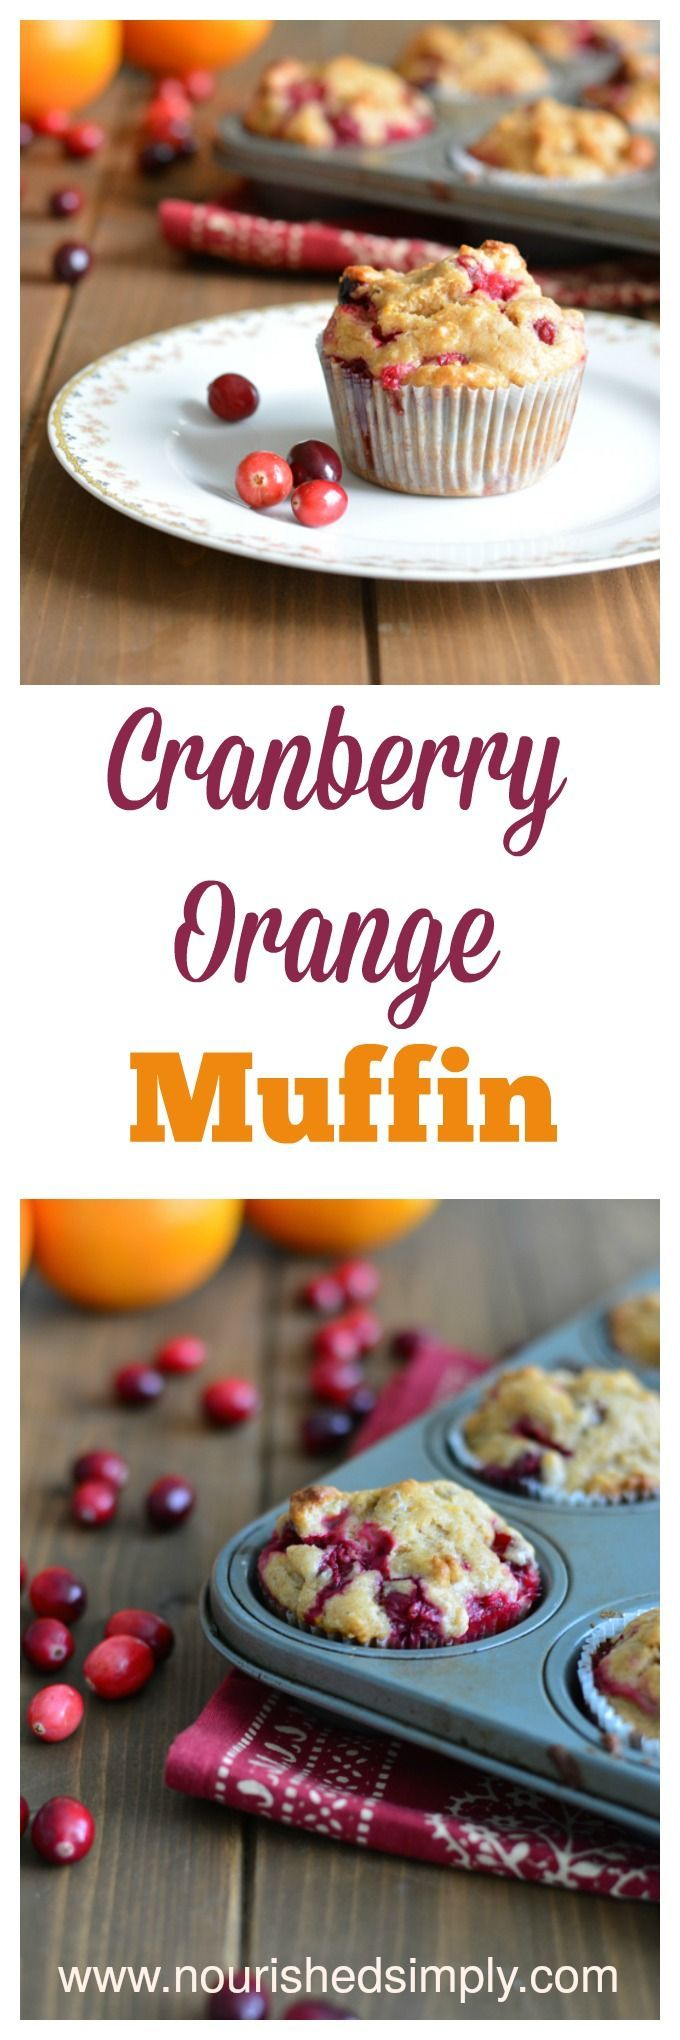 Cranberry Orange Muffin made with fresh cranberries and orange zest are perfect for the holidays.